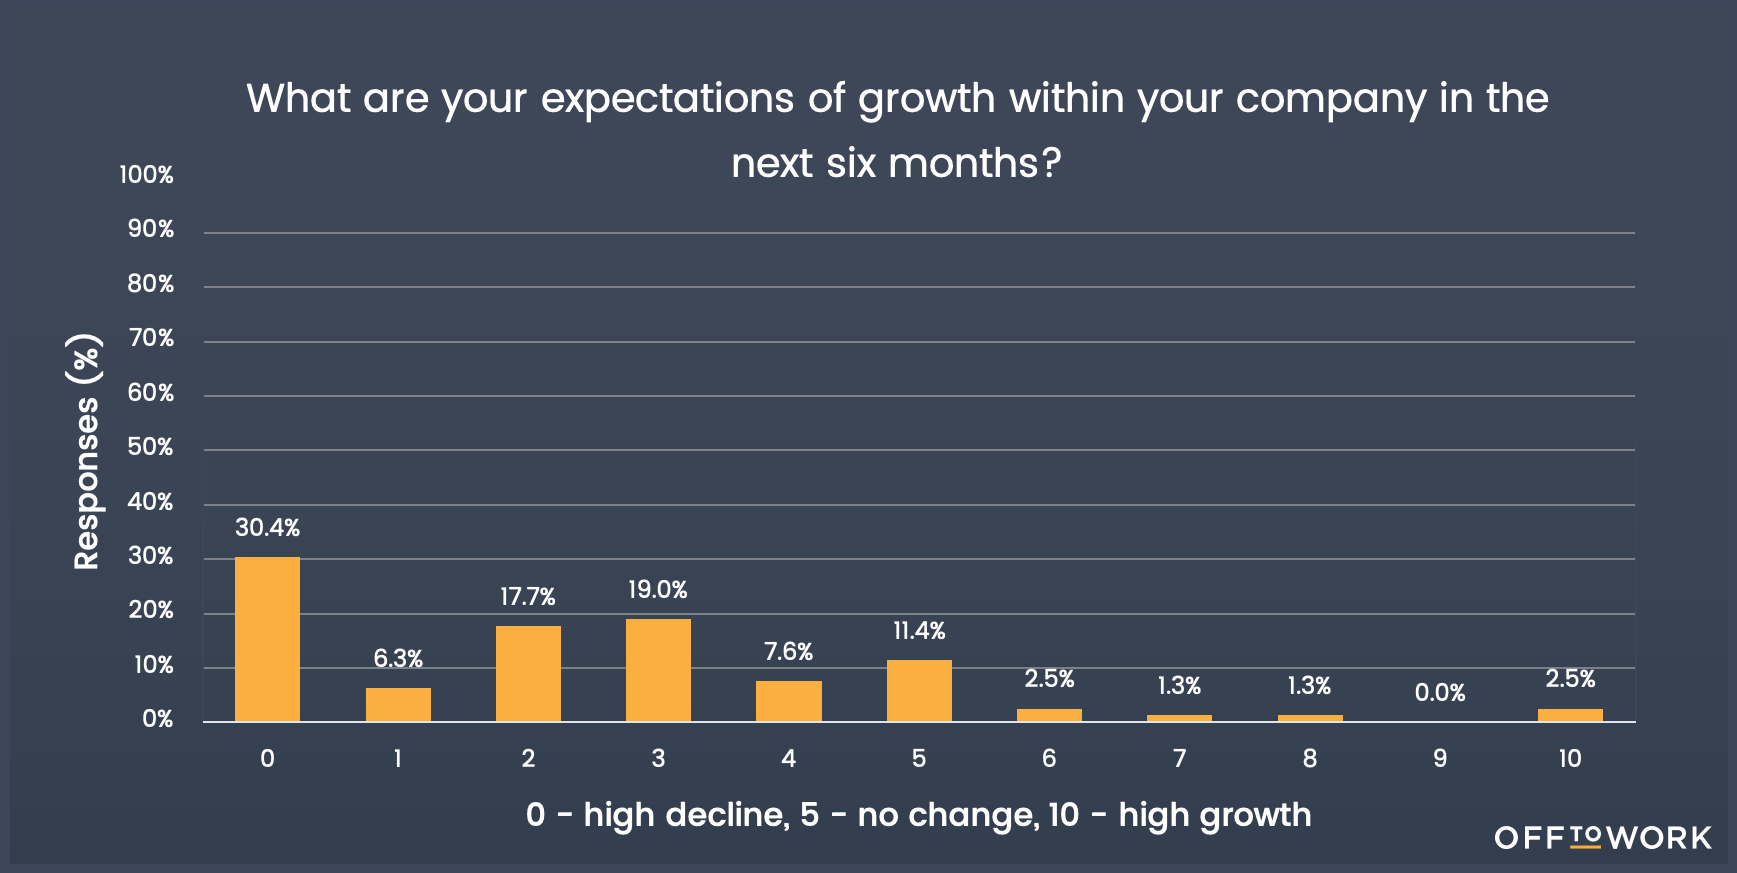 expectations of growth